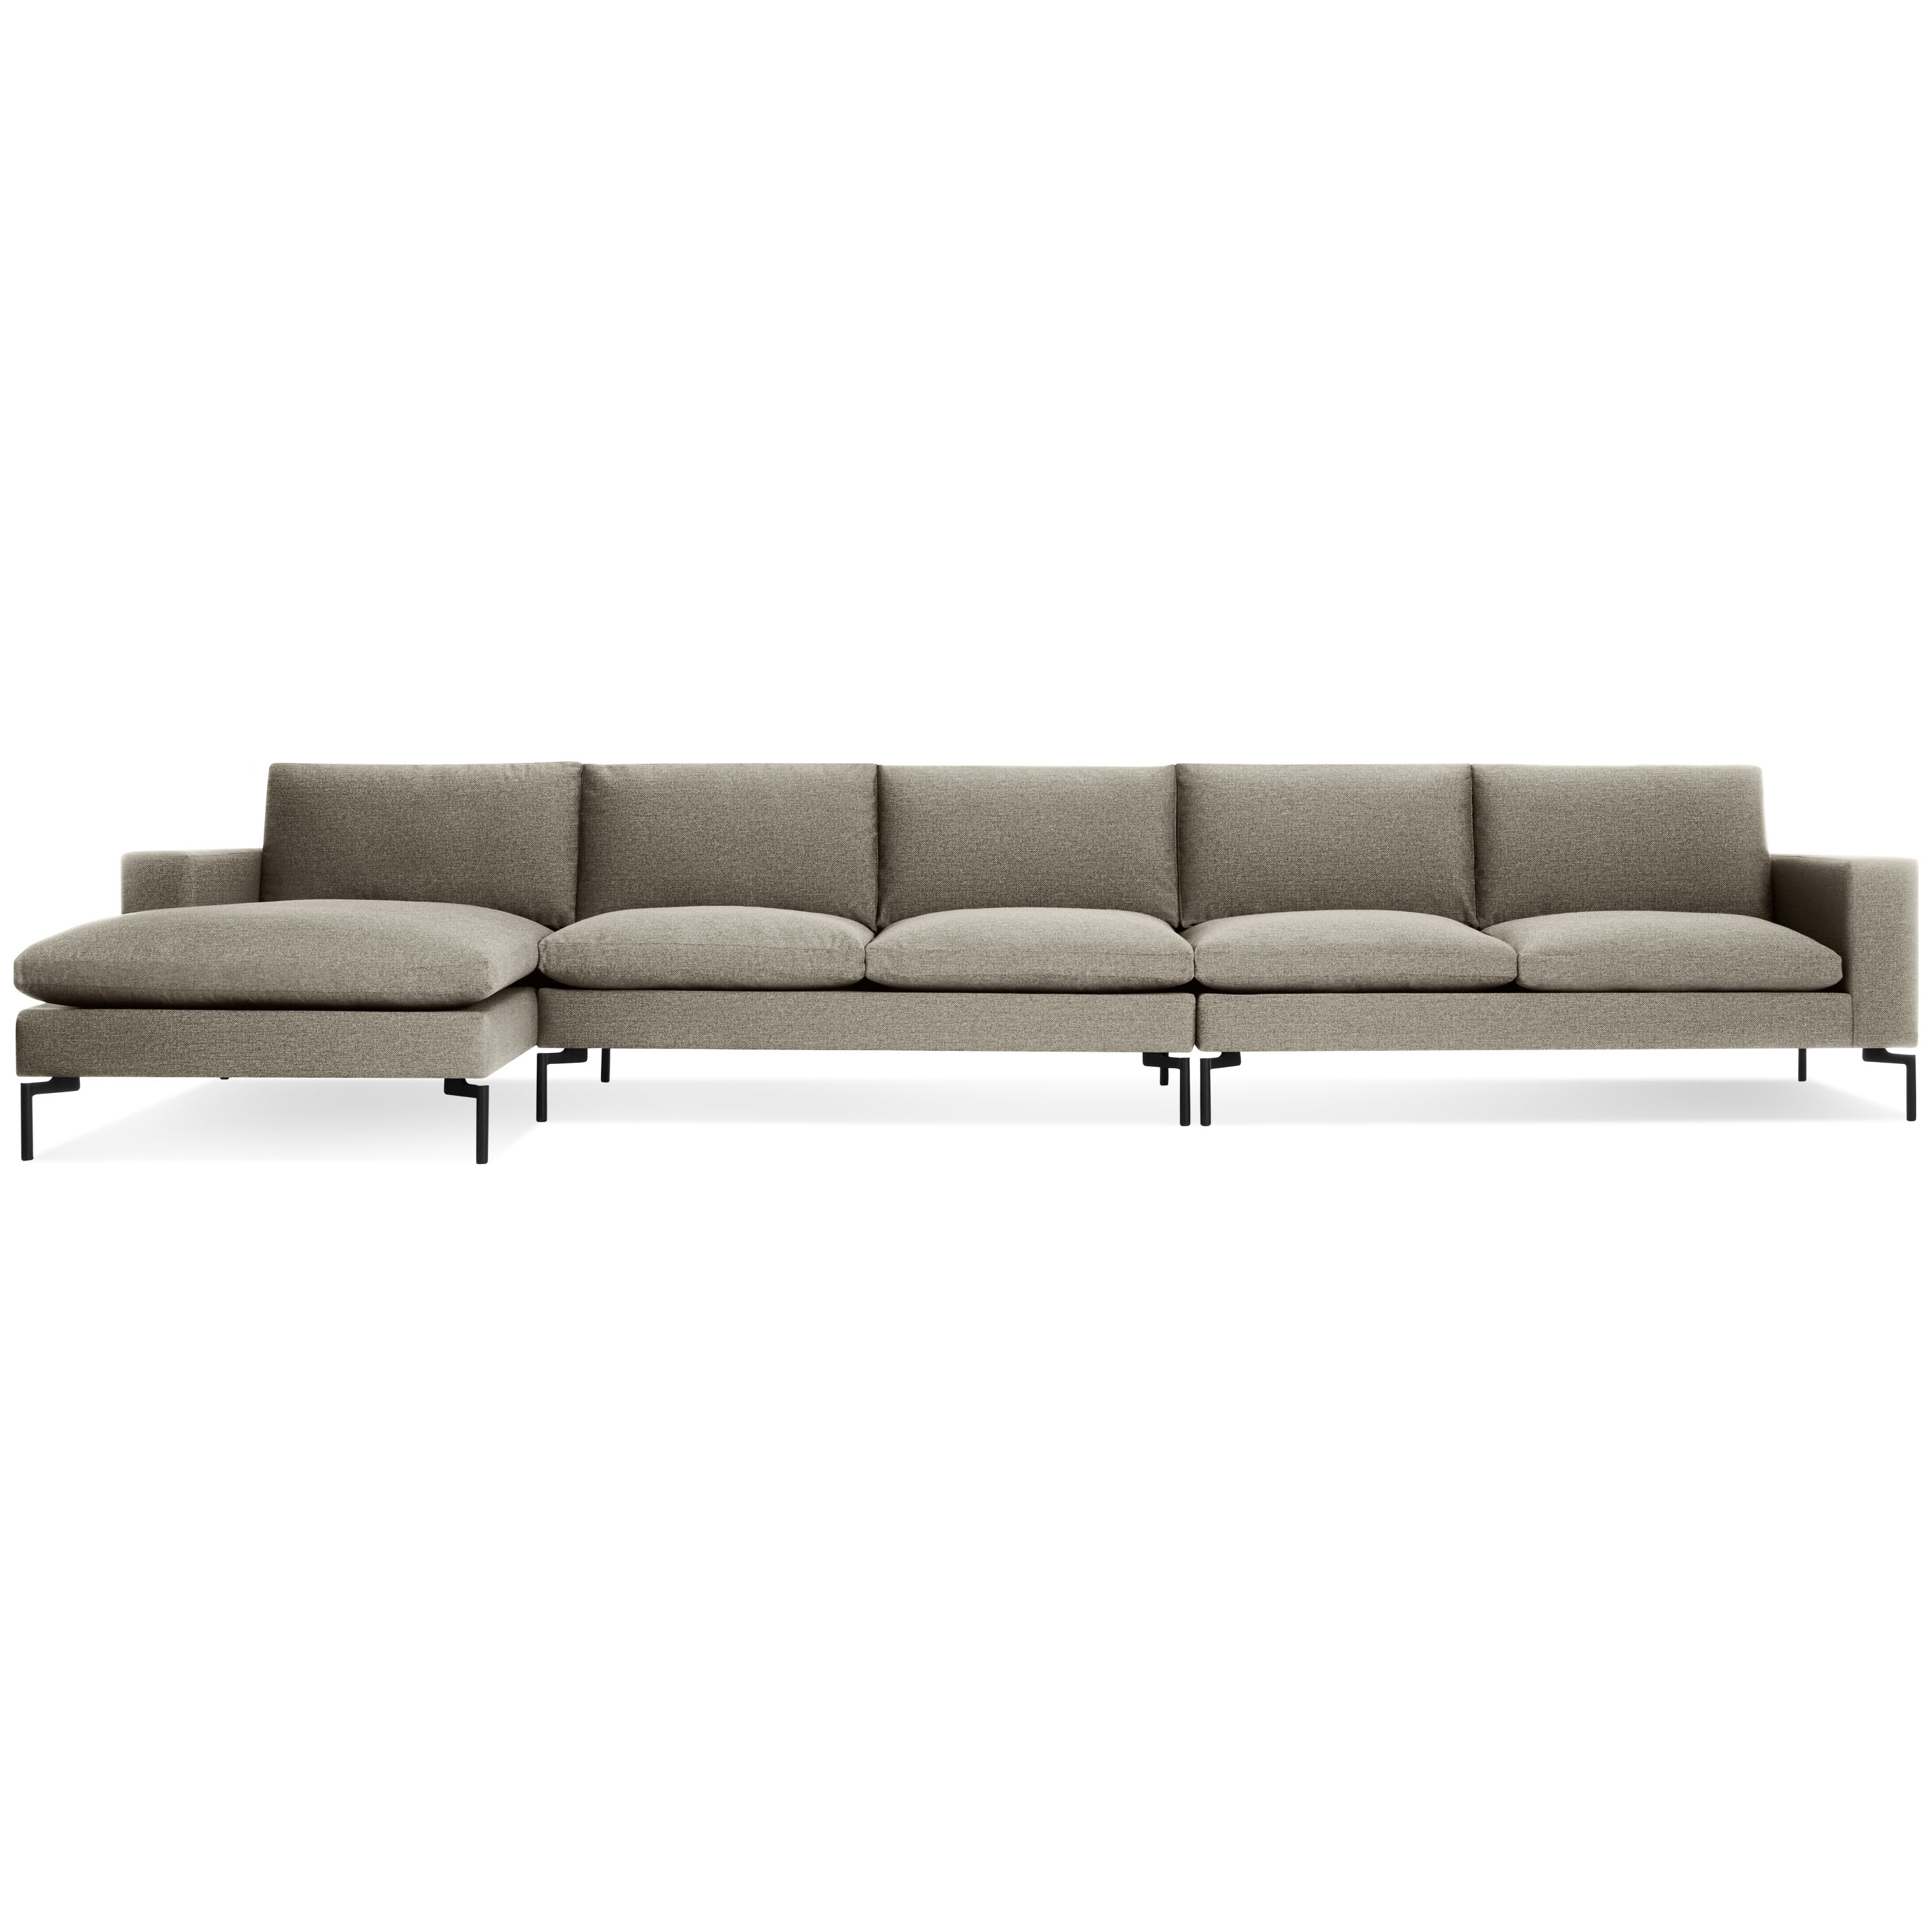 Blu Dot Throughout Latest Newfoundland Sectional Sofas (View 2 of 15)